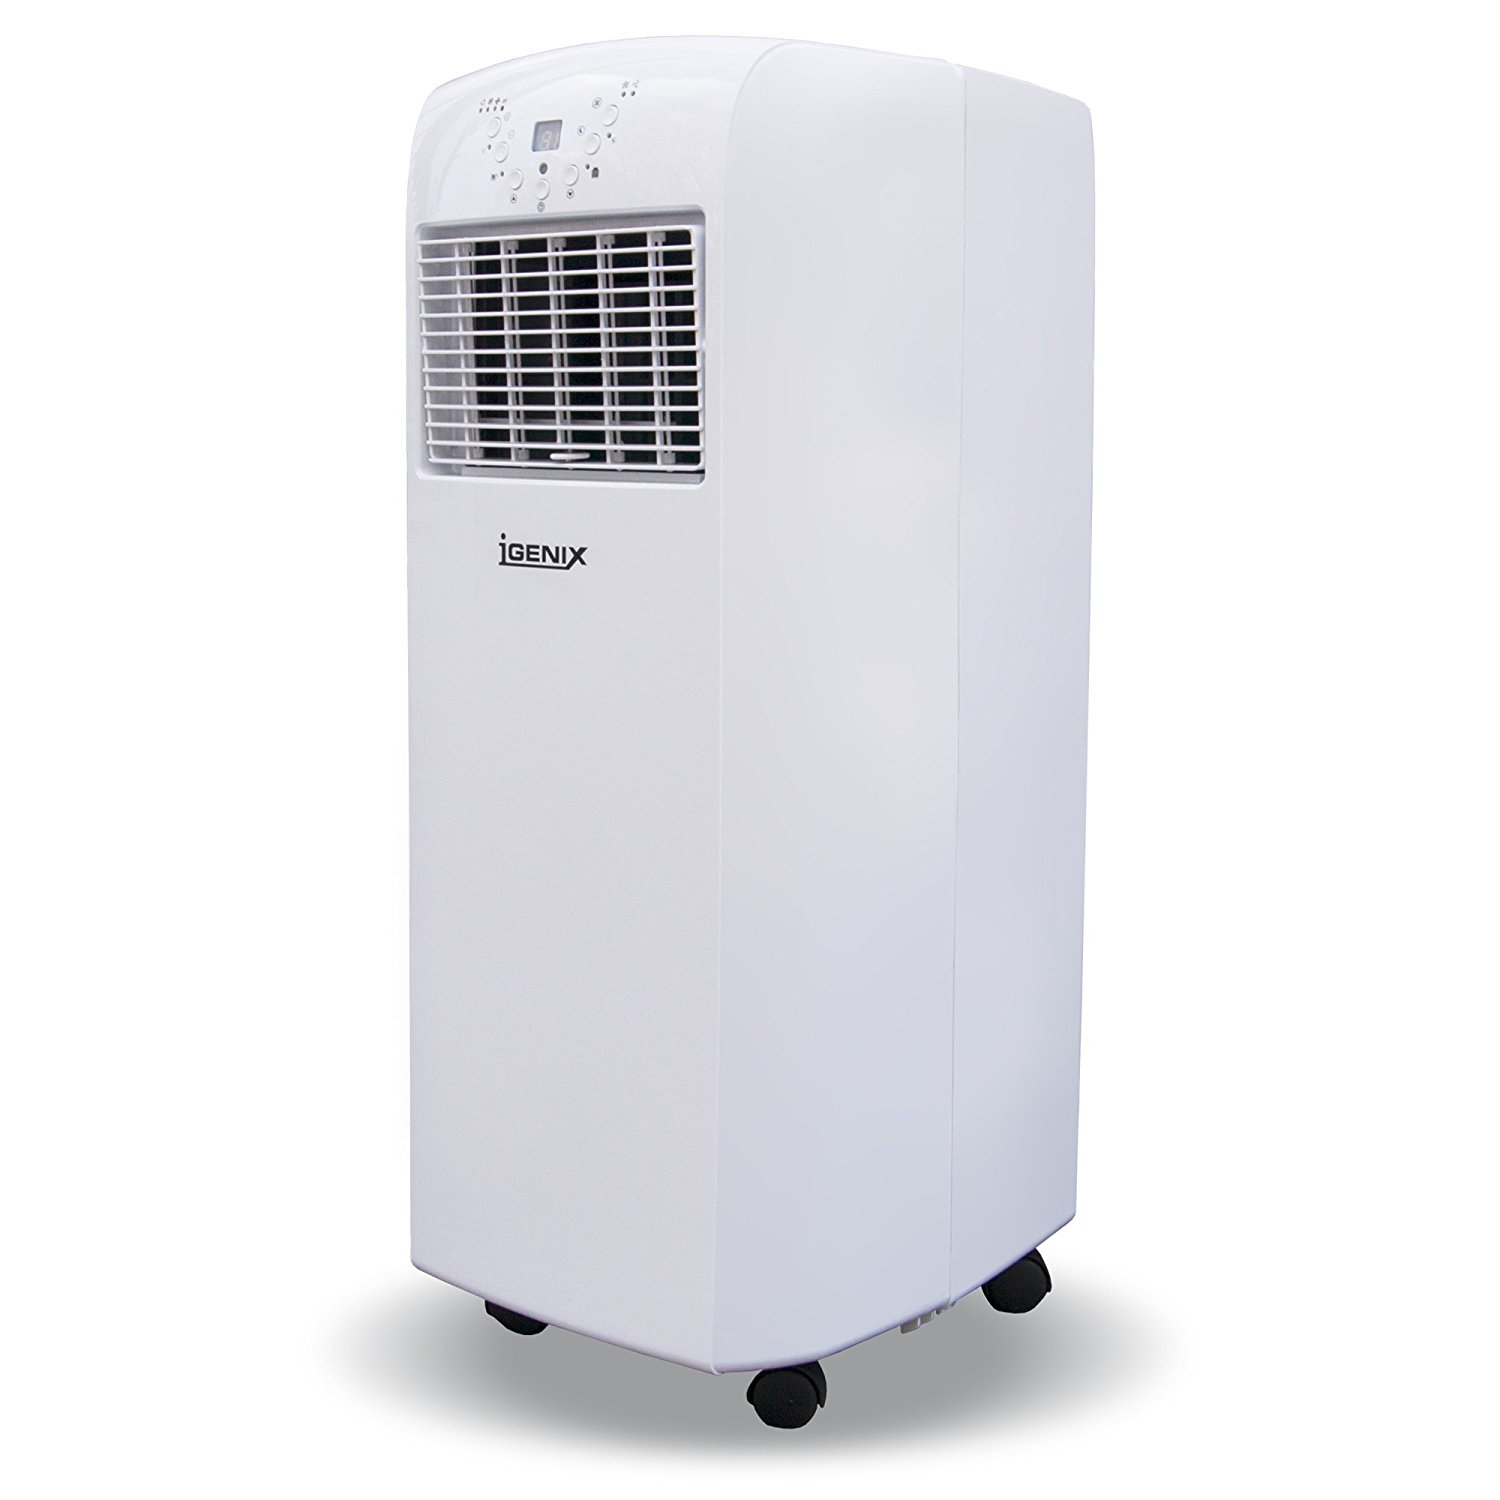 Review Of The Igenix Ig9902 Portable Air Conditioner